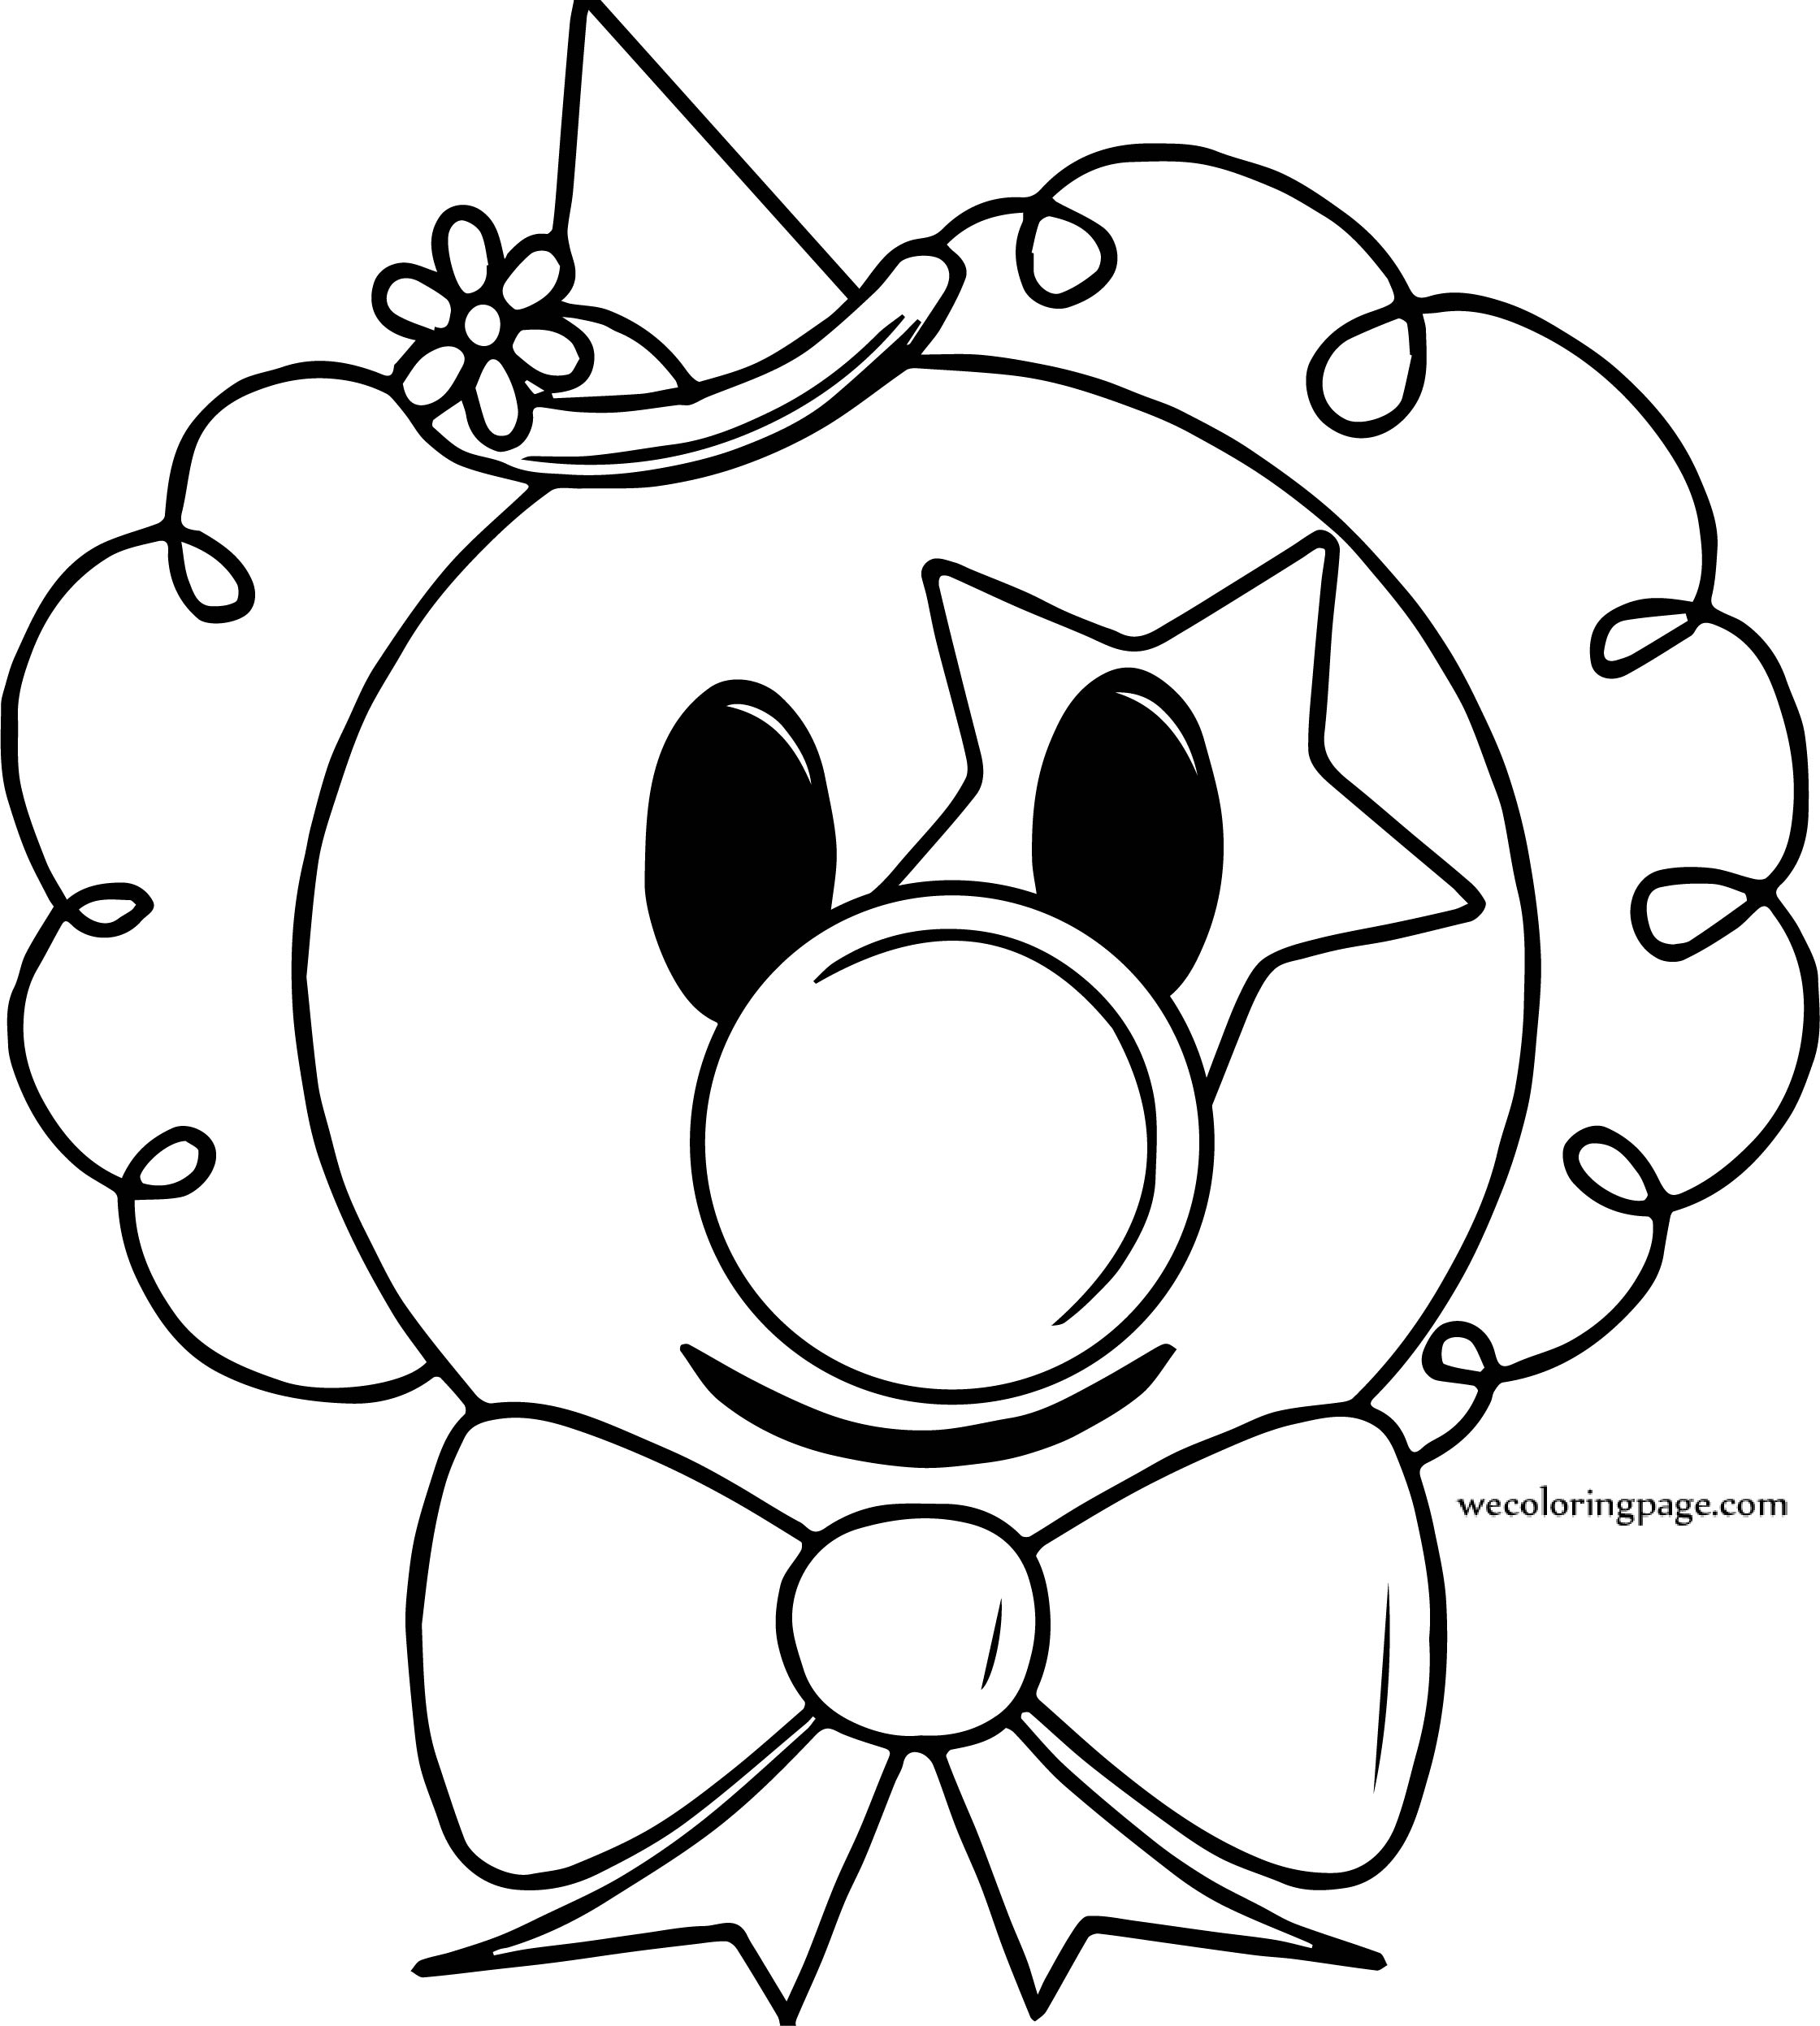 Circus Coloring Page Clown Face